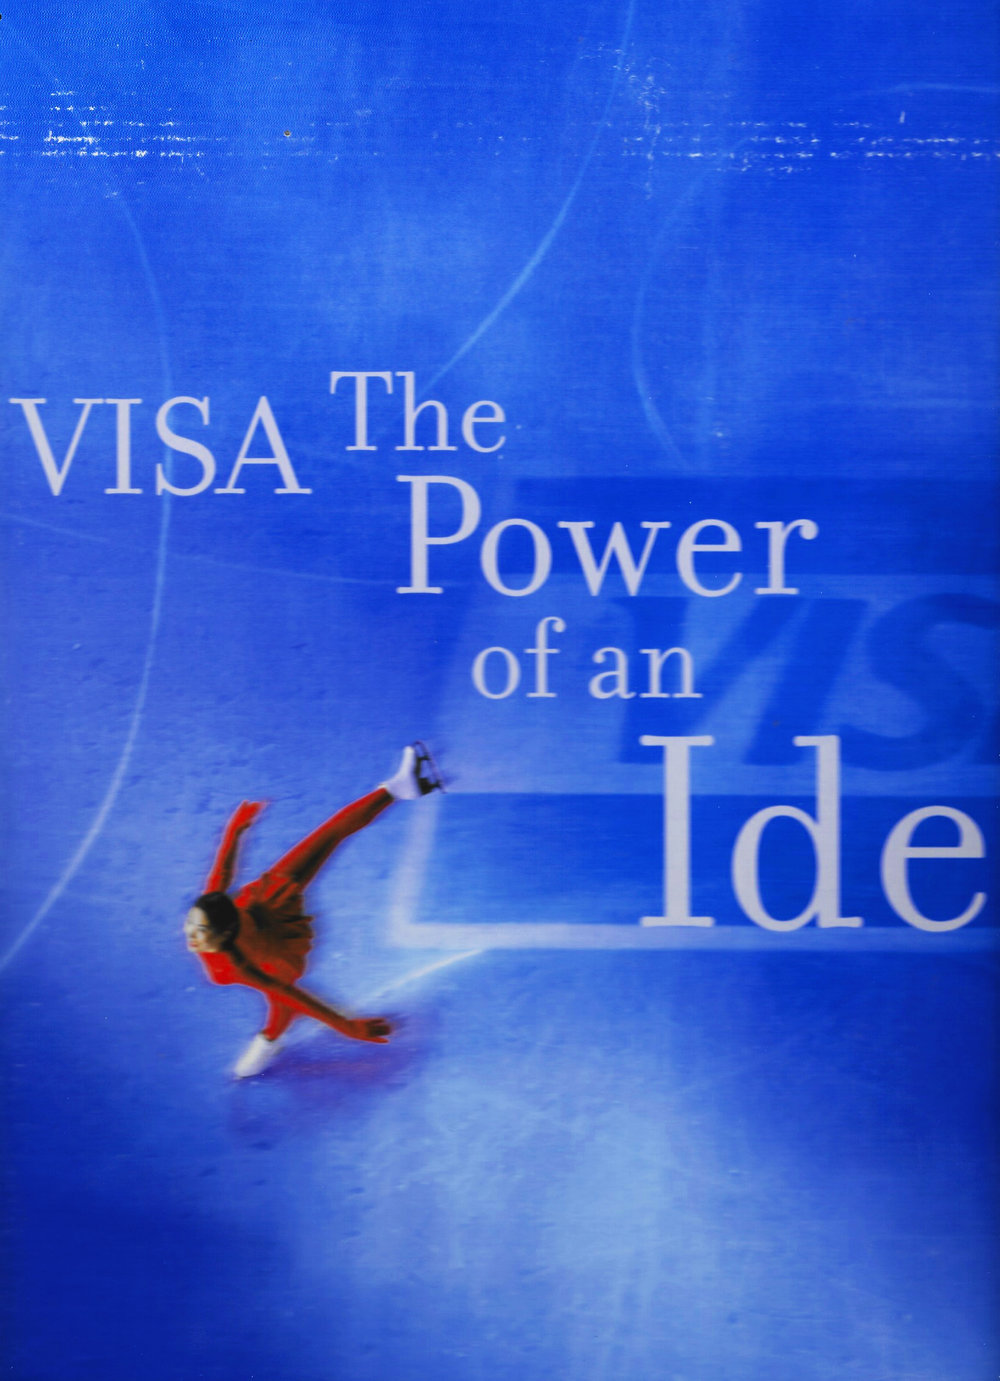 """'Visa, The Power of An Idea' is the finest book ever written about the credit card industry and for us it has been a fabulous corporate tool."" - - Dave Brancoli, former Director of Corporate Communications, Visa International"